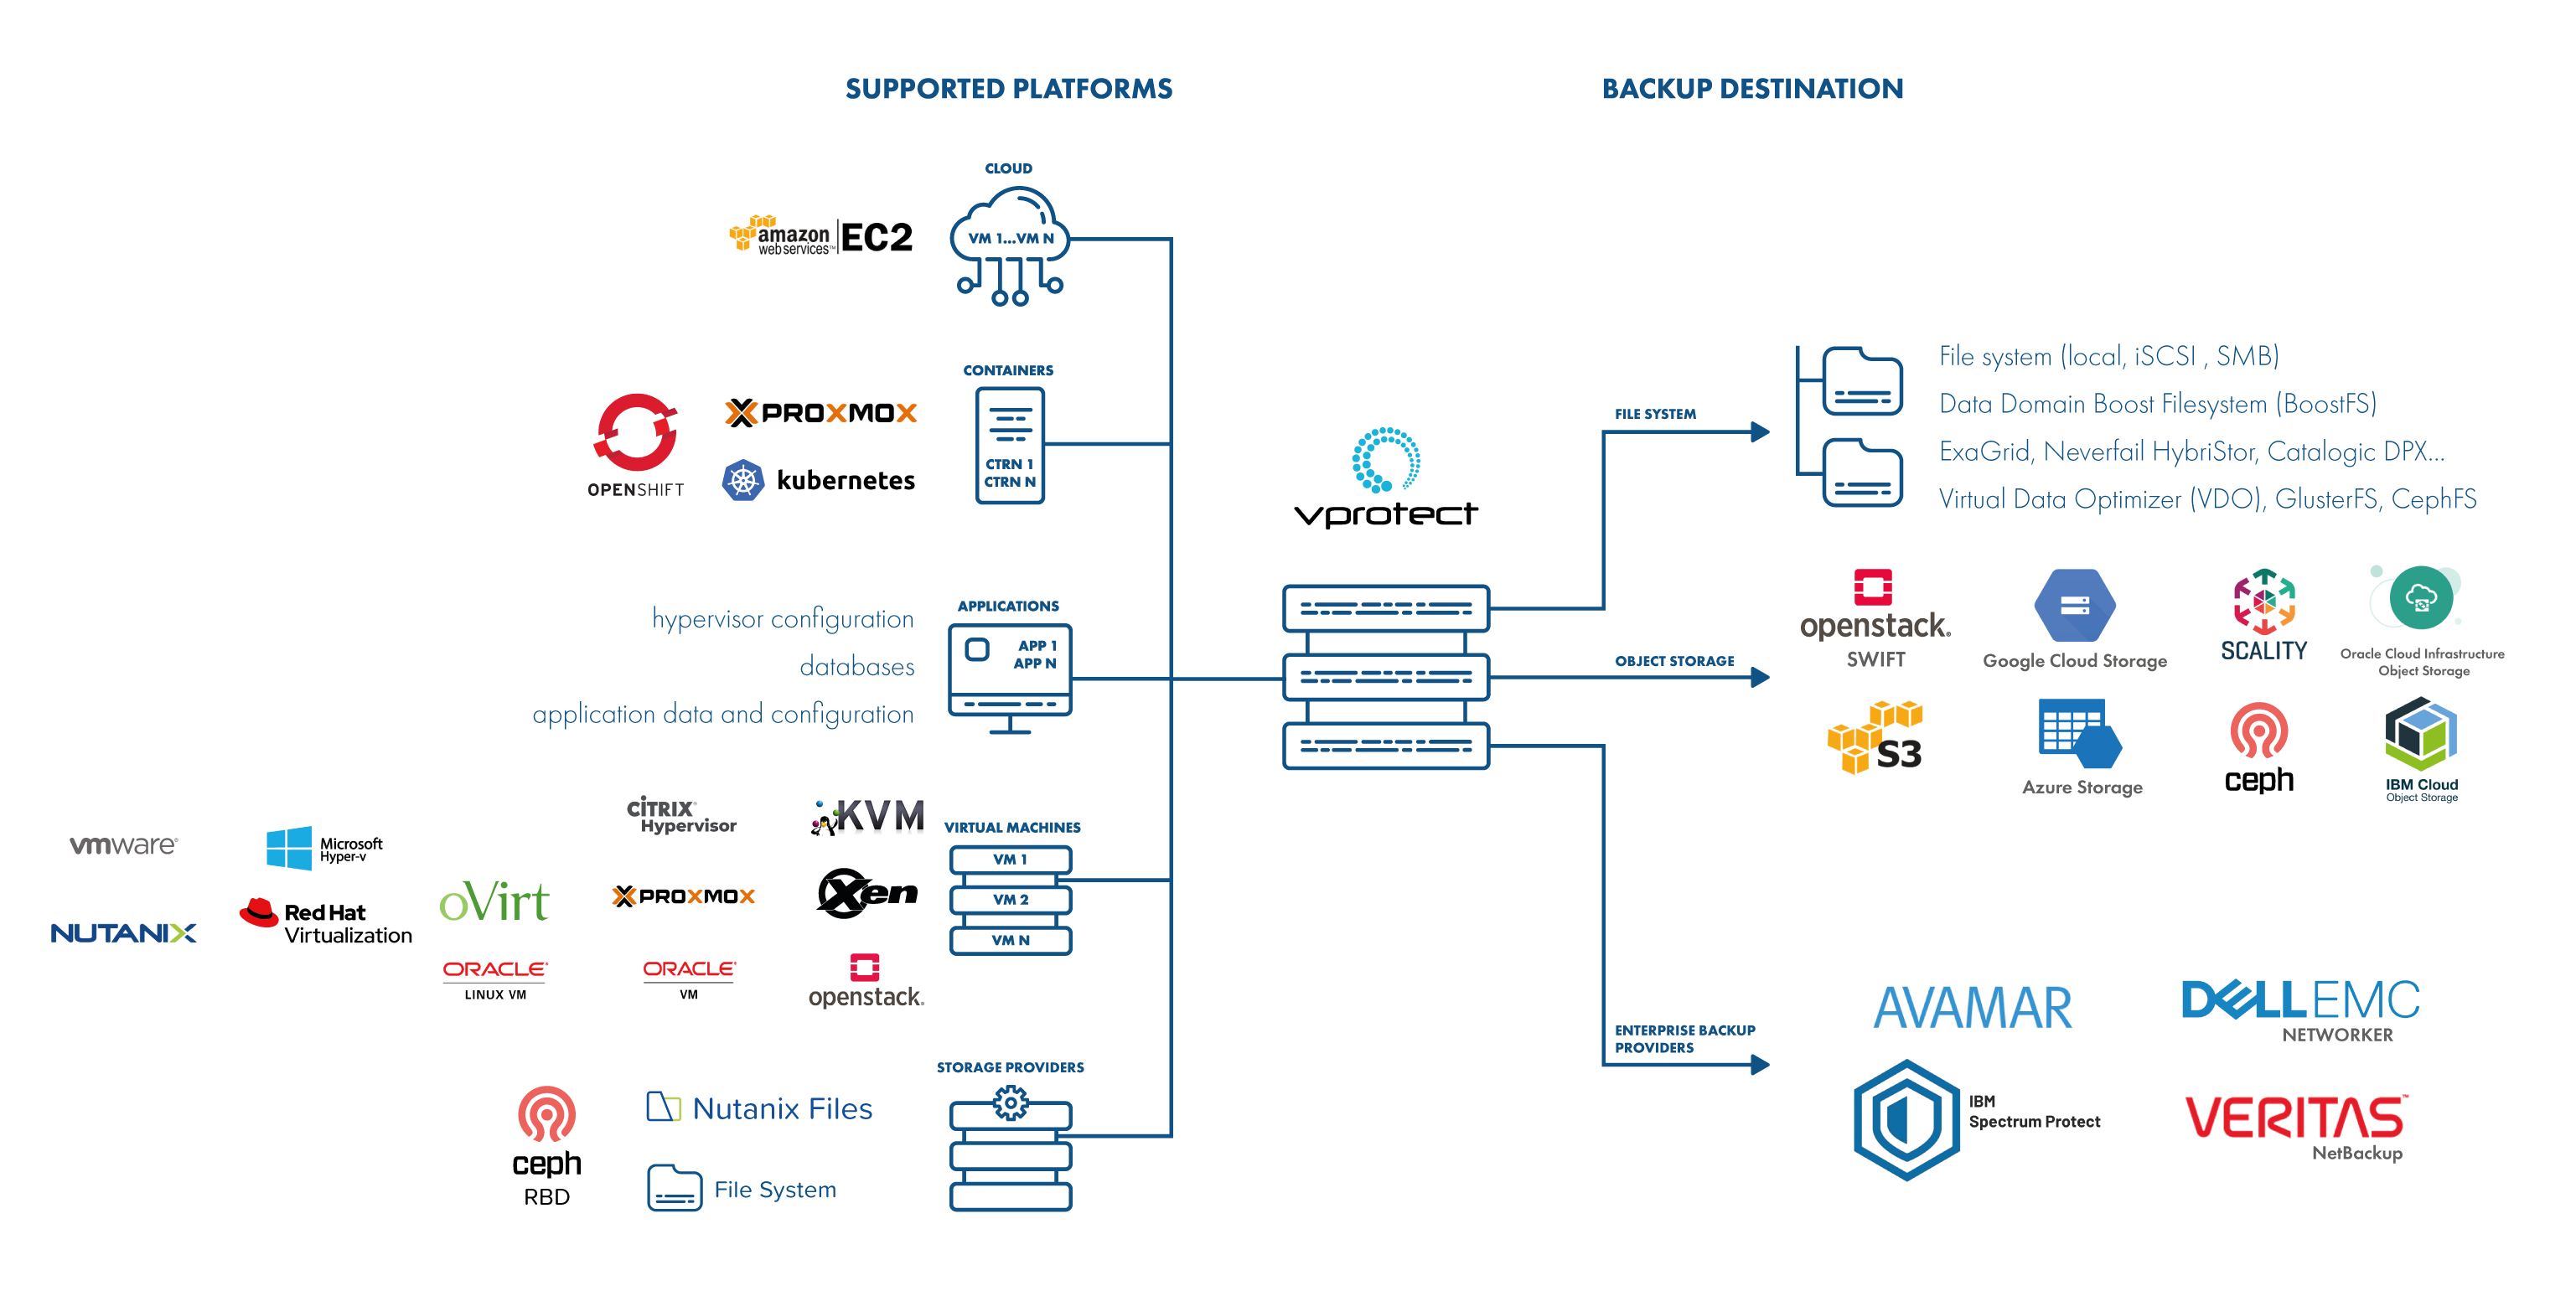 Top data backup and recovery solution architecture - Storware vProtect 4.2 by Storware 2021